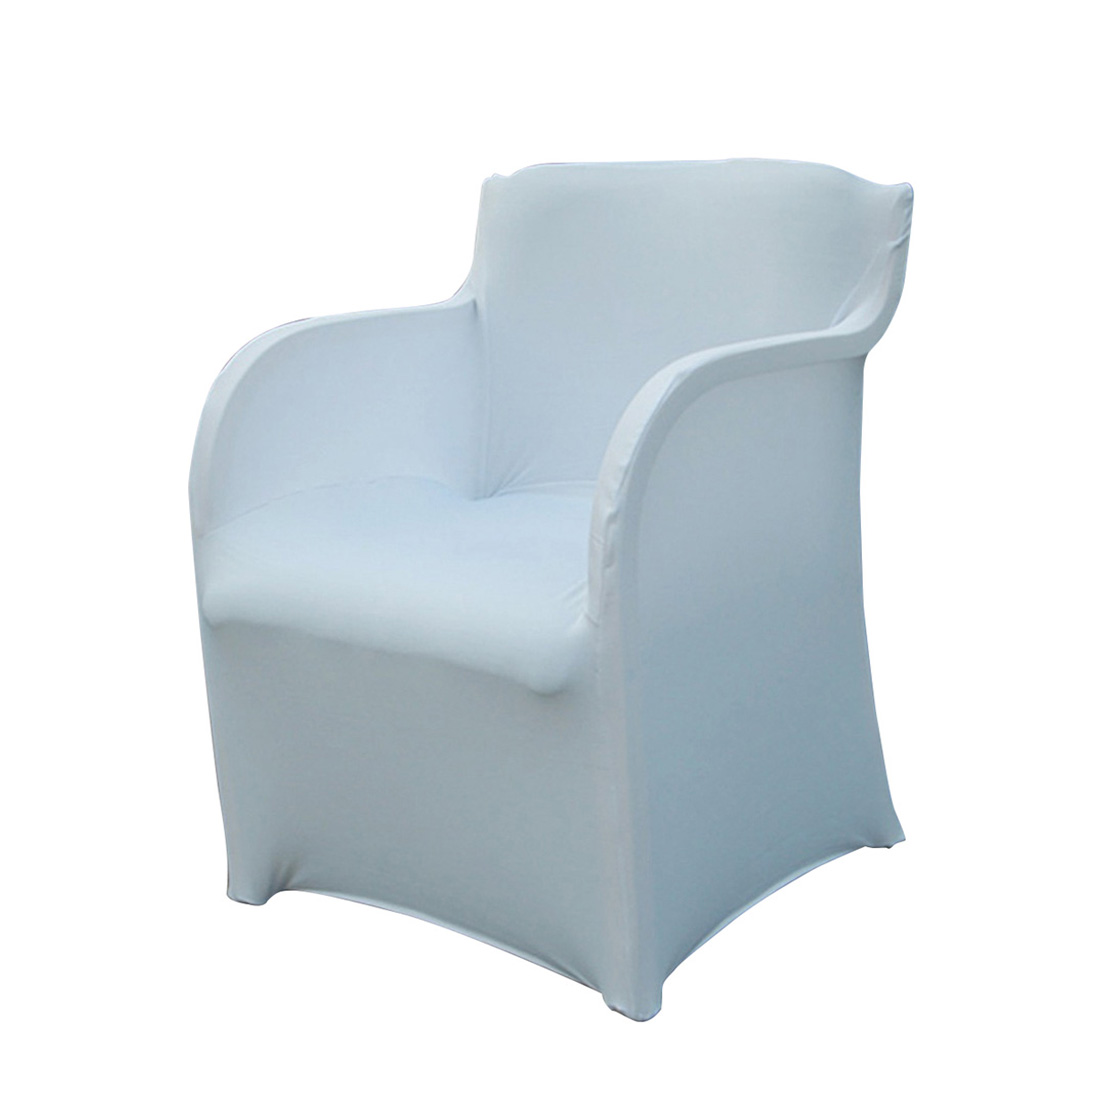 Cheap Chair Covers For Chairs With Arms Clear Inflatable Bubble Top Selling Armchair Slipcover Spandex Stretch Arm